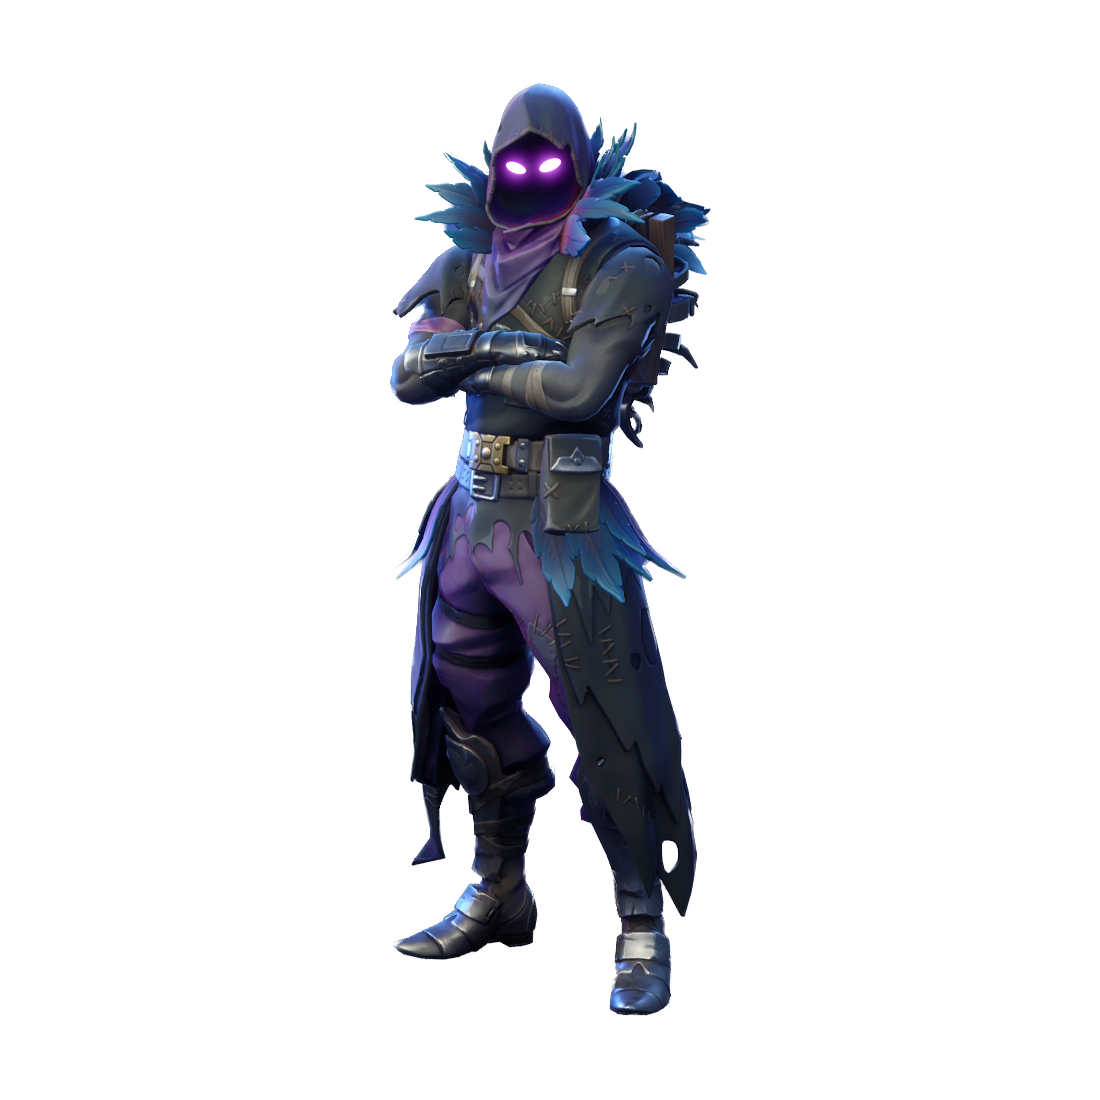 Fortnite png new. Fnbr co cosmetics report